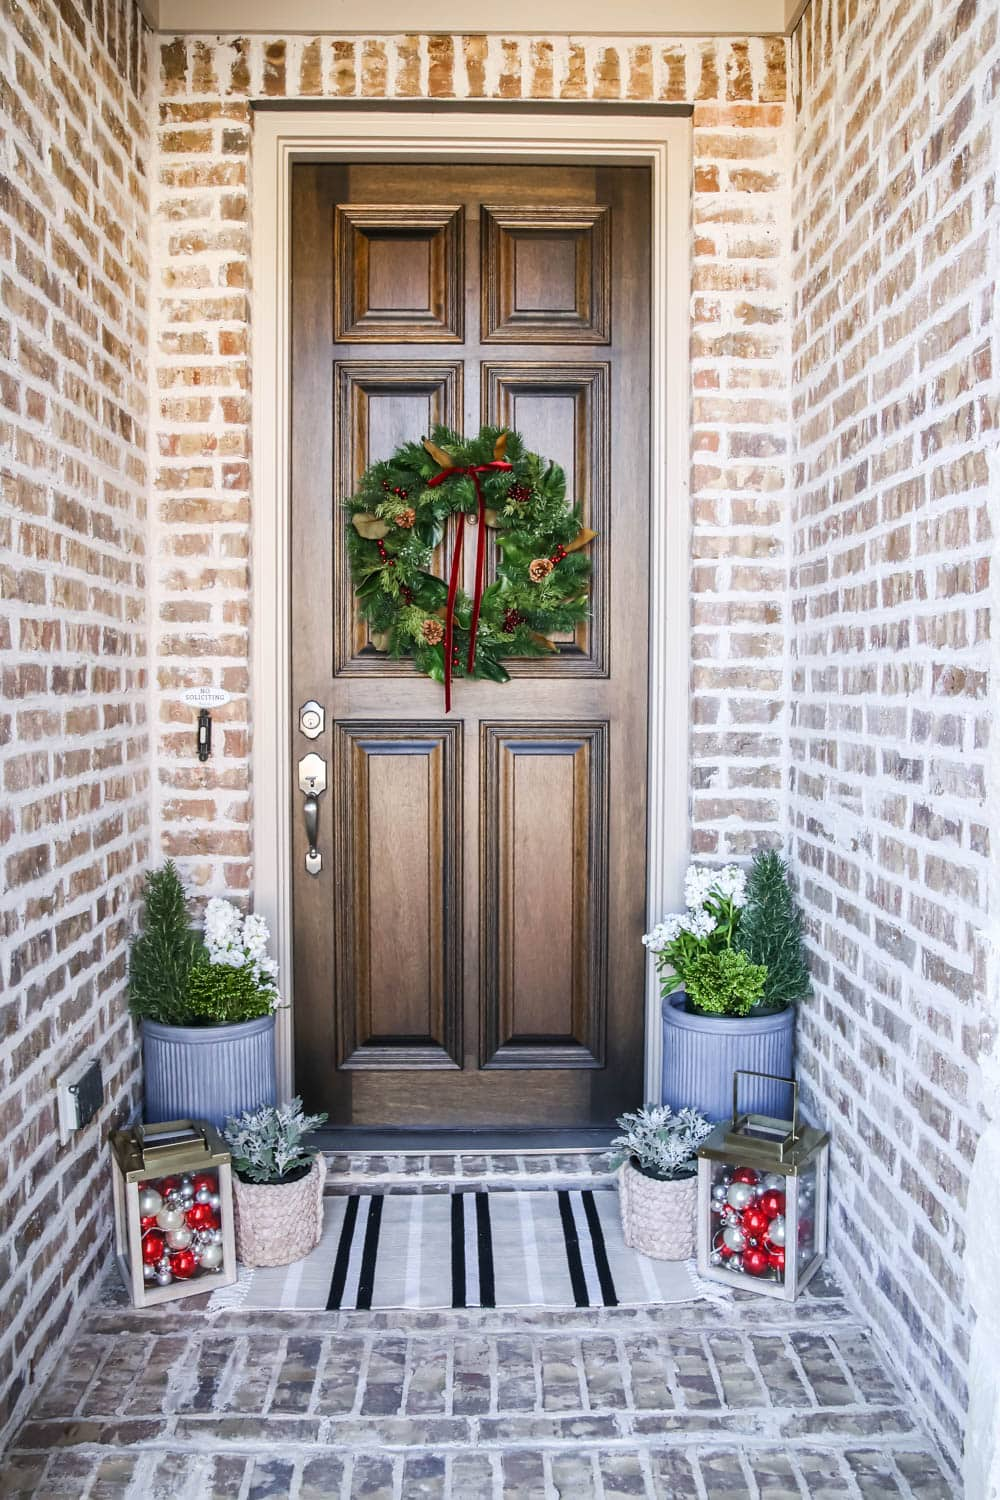 A traditional Christmas porch in red and green with gold lanterns, Christmas ornaments and fresh flowers. #ABlissfulNest #christmasporch #christmasdecorating